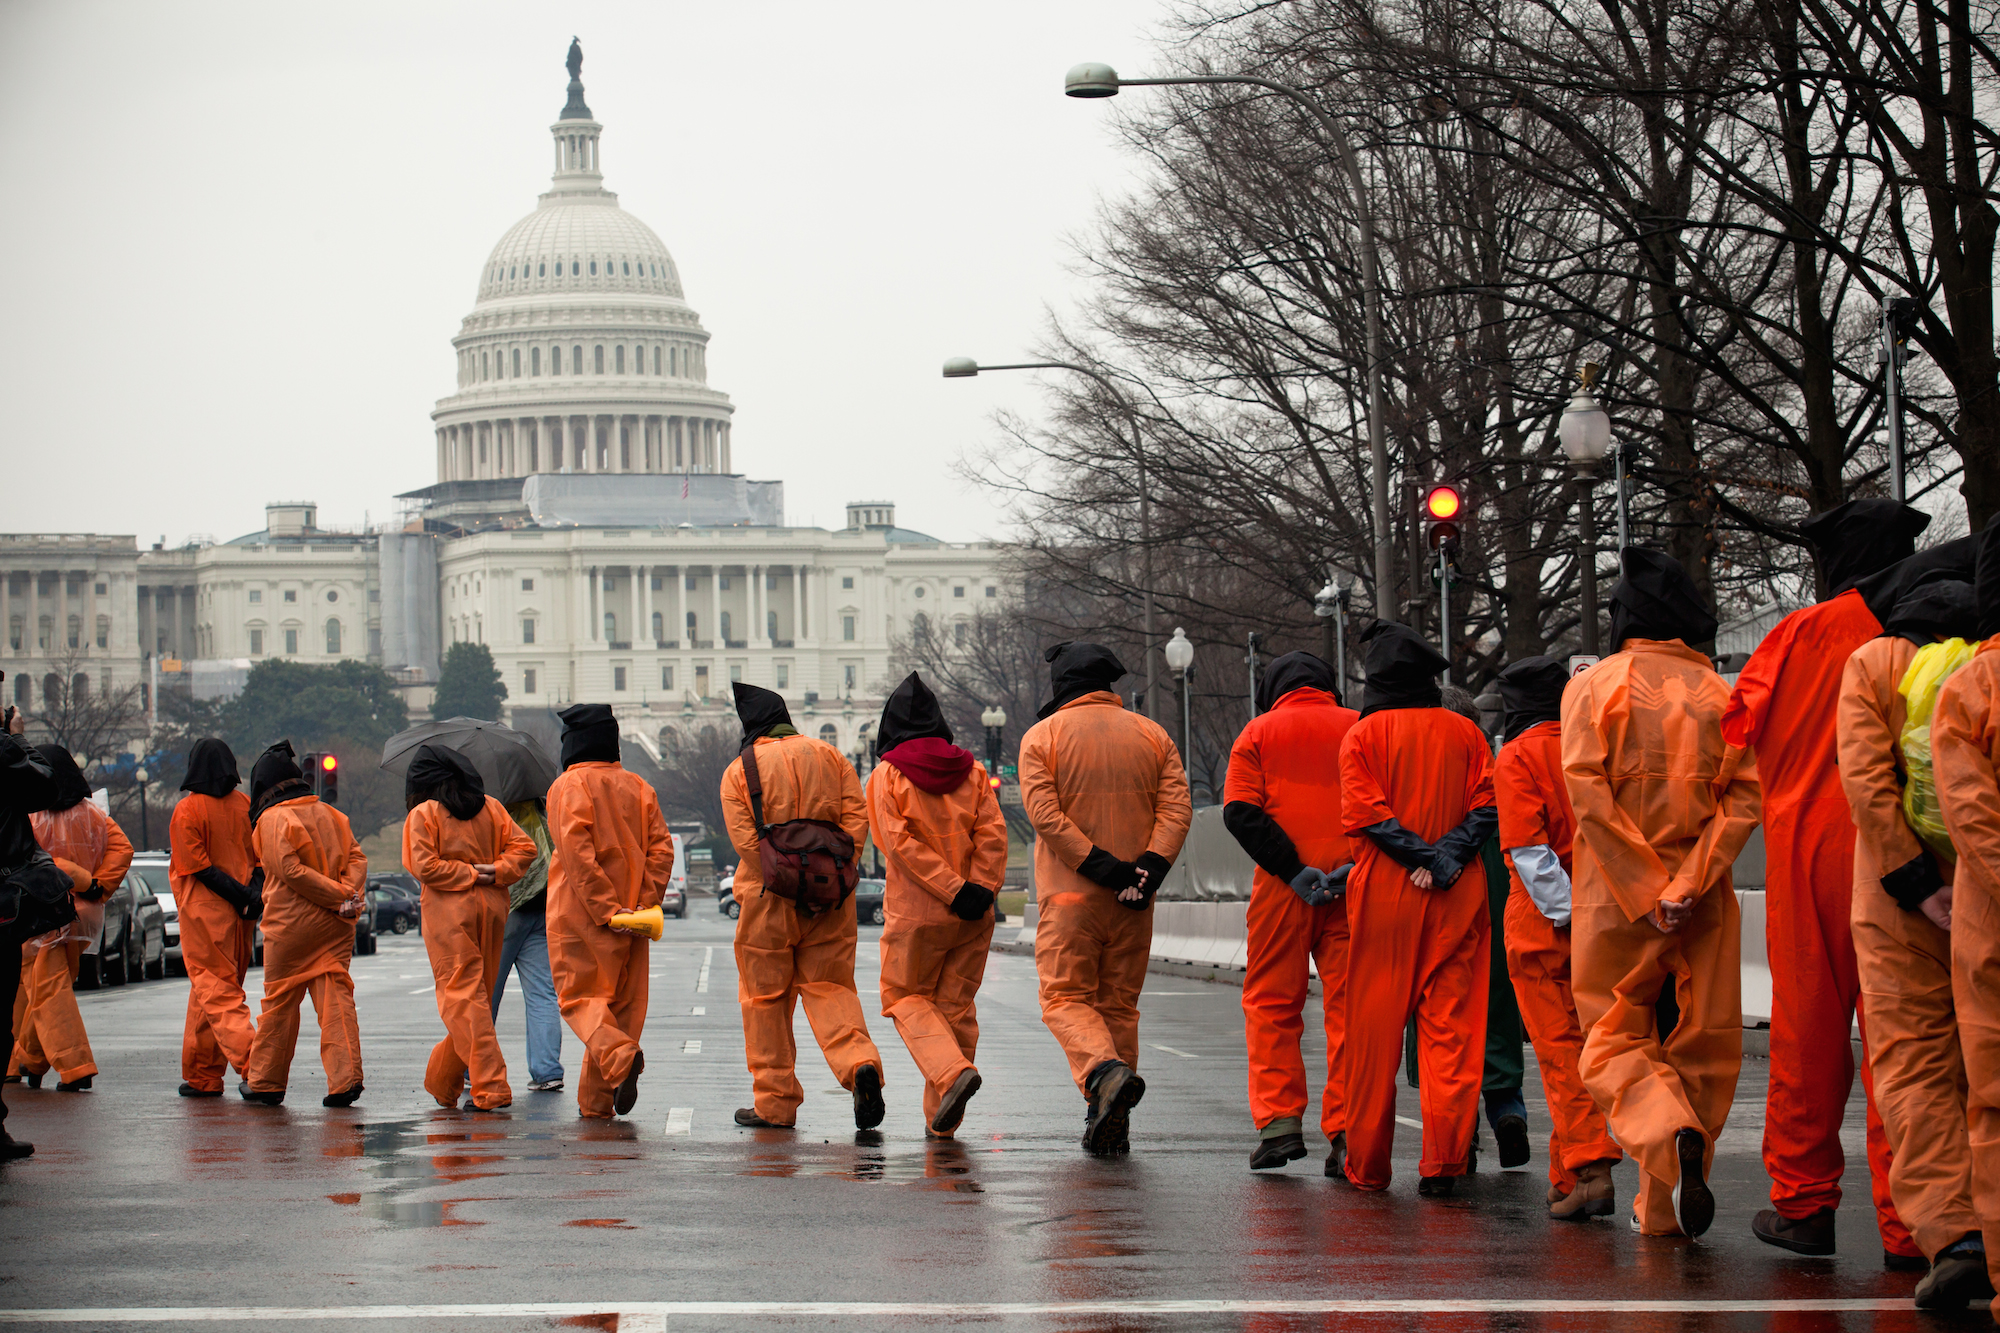 Activists protest the 10th anniversary of the Guantanamo Bay detention, Washington DC, USA, 11 January 2012.